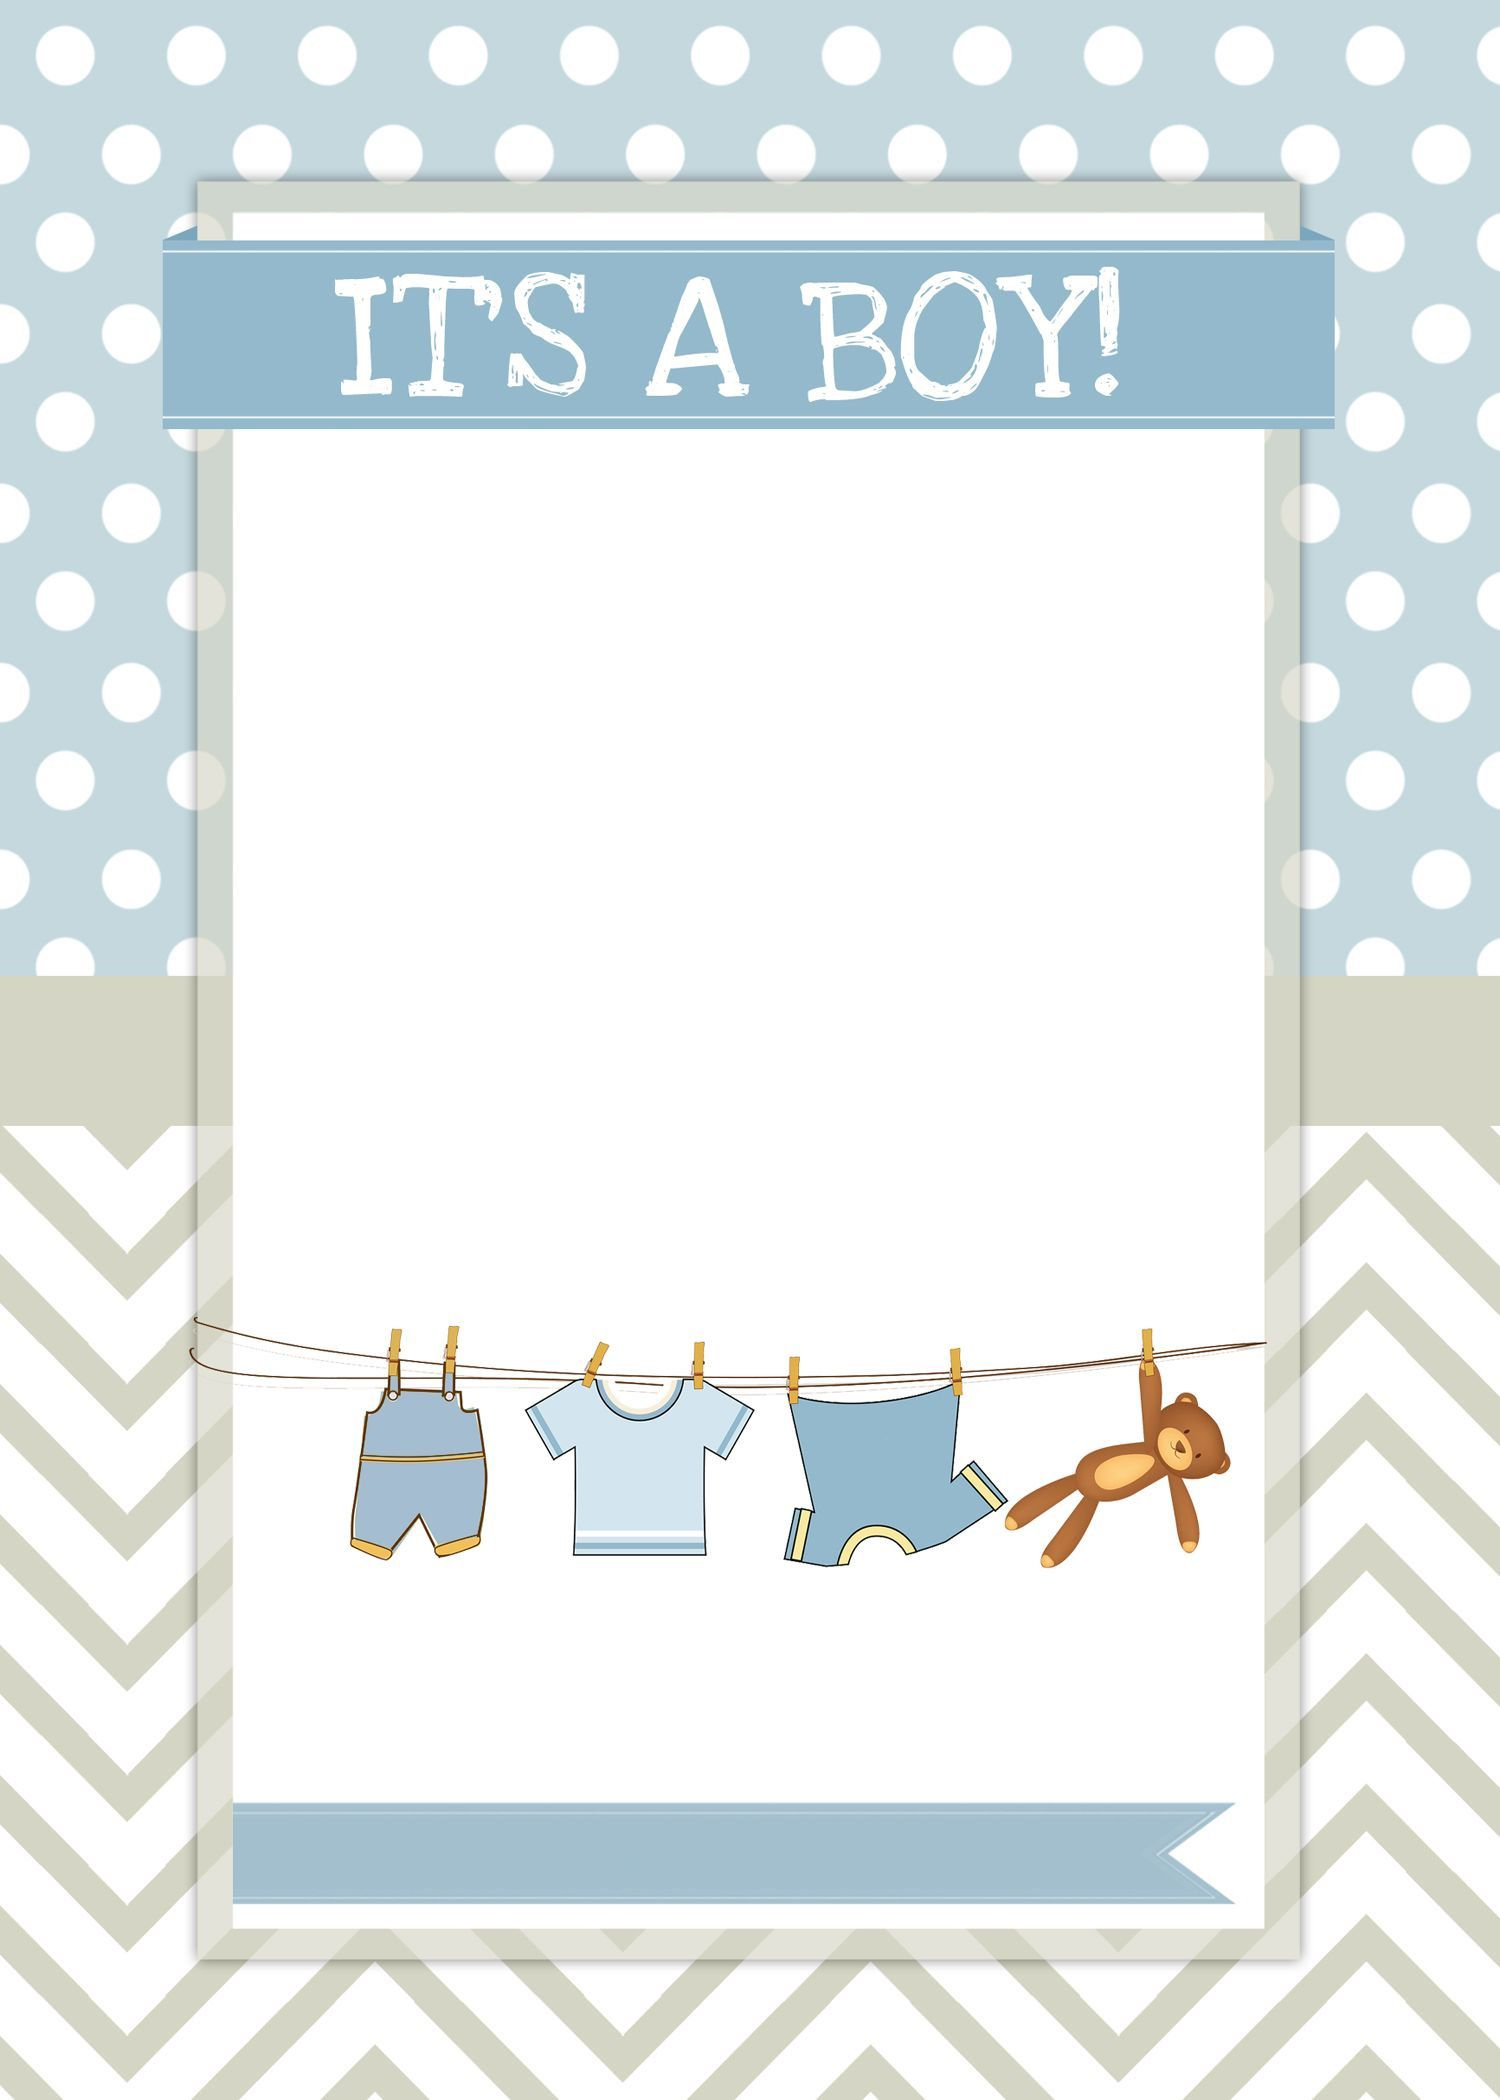 009 Remarkable Free Printable Baby Shower Card For Boy Photo  BingoFull